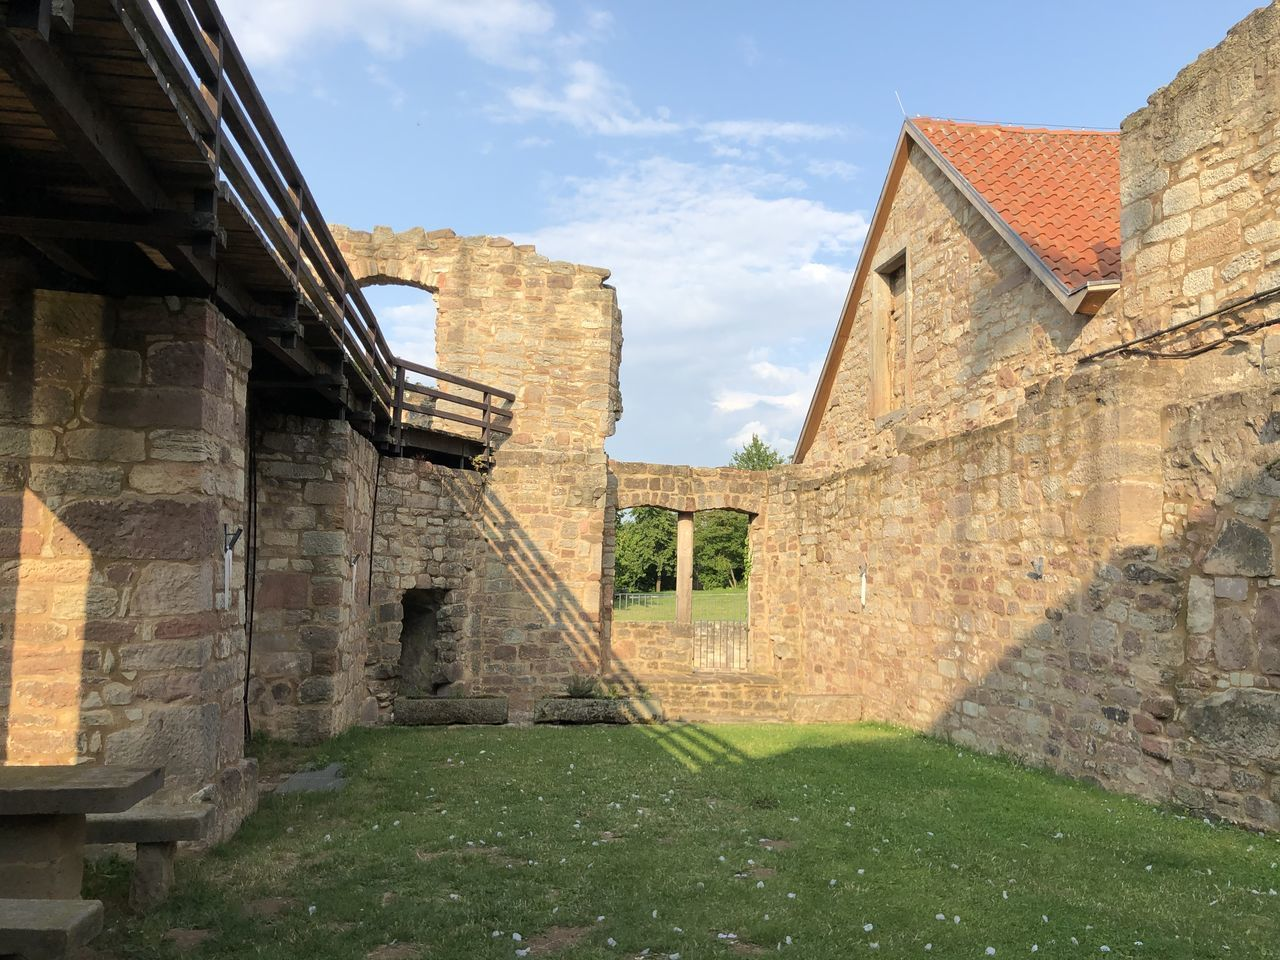 architecture, built structure, building exterior, building, sky, nature, the past, history, grass, day, cloud - sky, old, plant, no people, house, outdoors, wall, wall - building feature, sunlight, window, stone wall